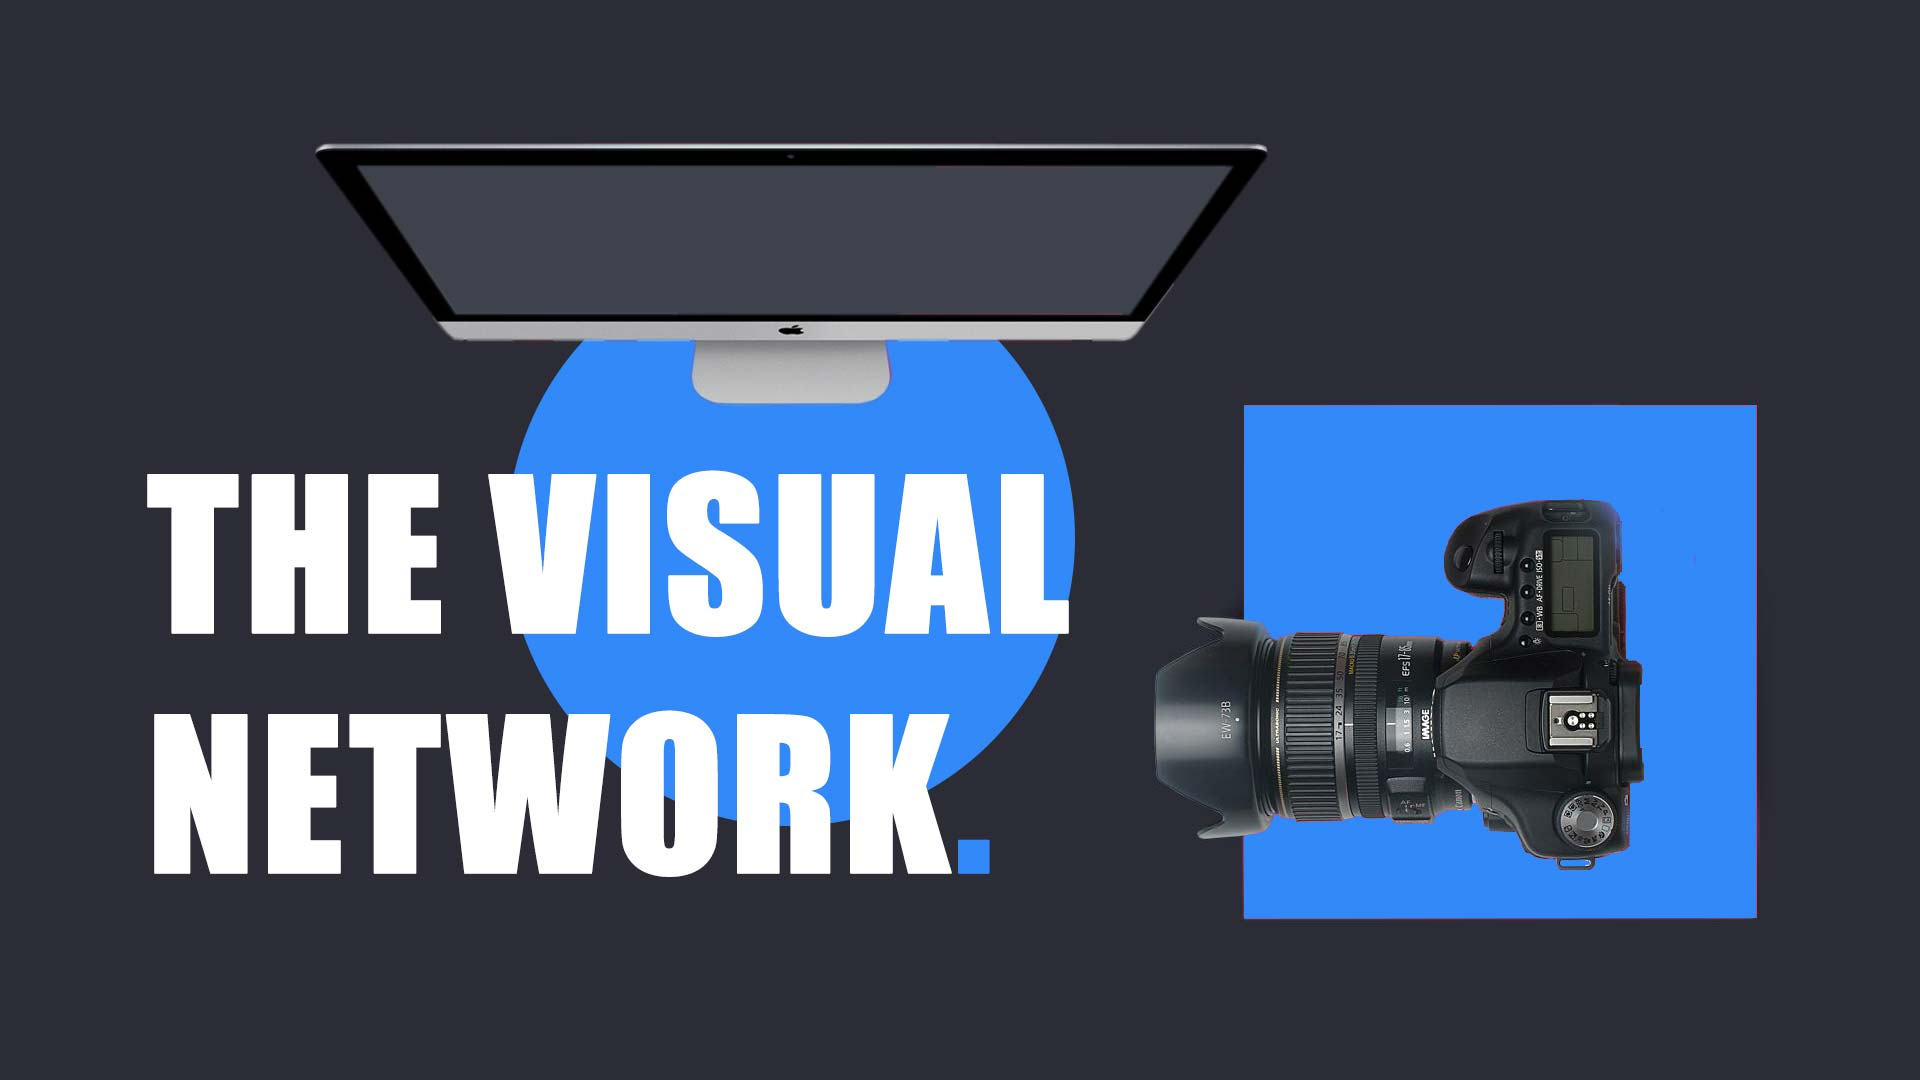 The Visual Network.